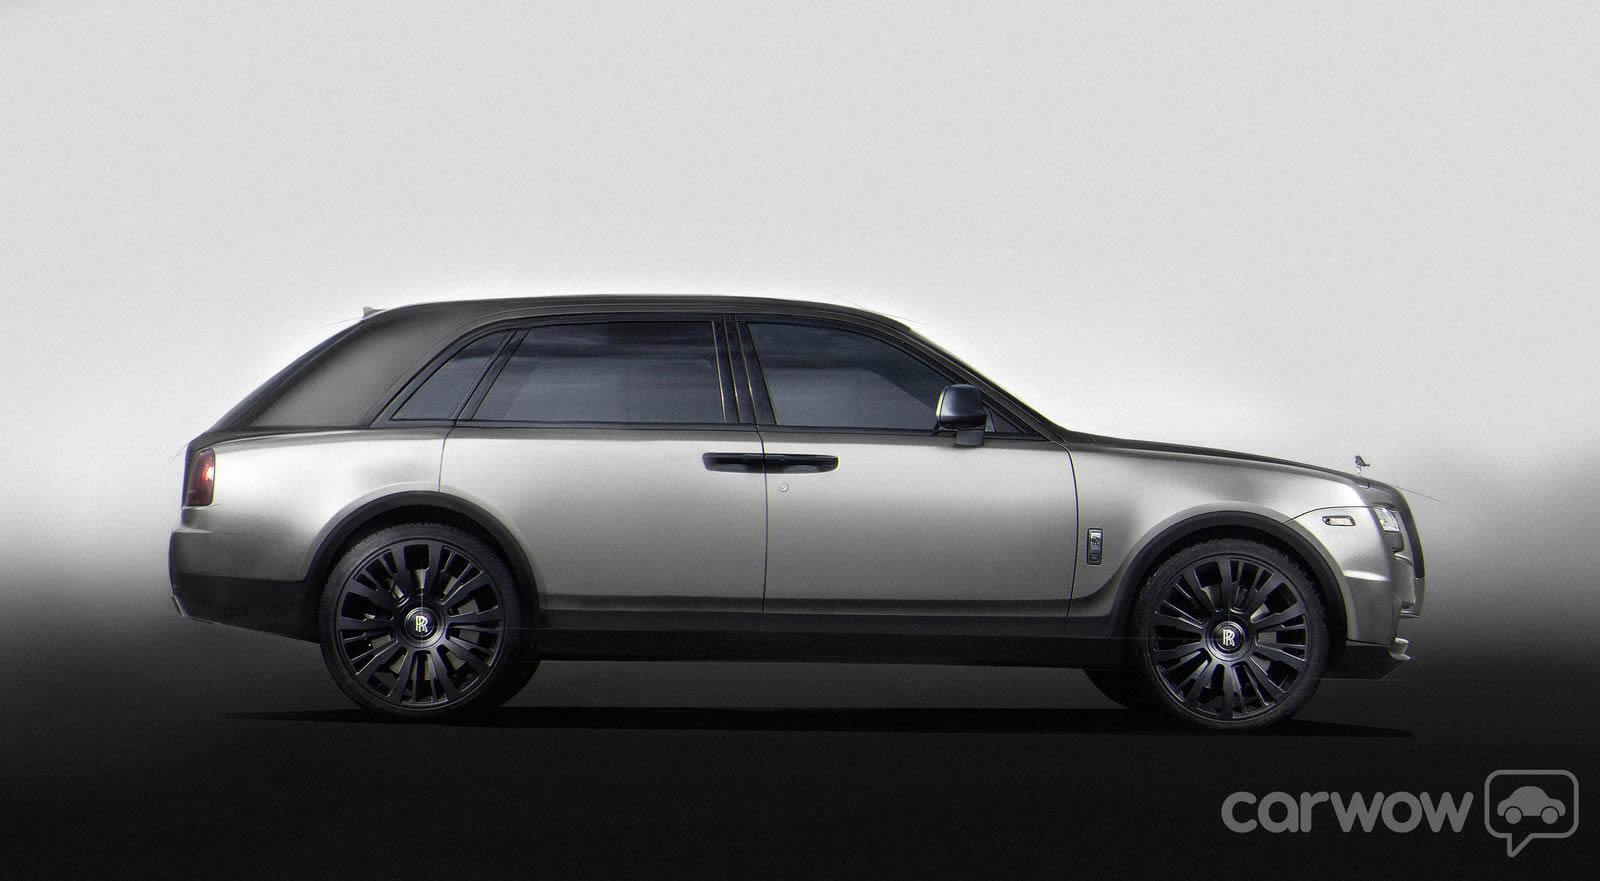 2015 Rolls Royce Suv Crossover Rendering By Carwow Uk 4